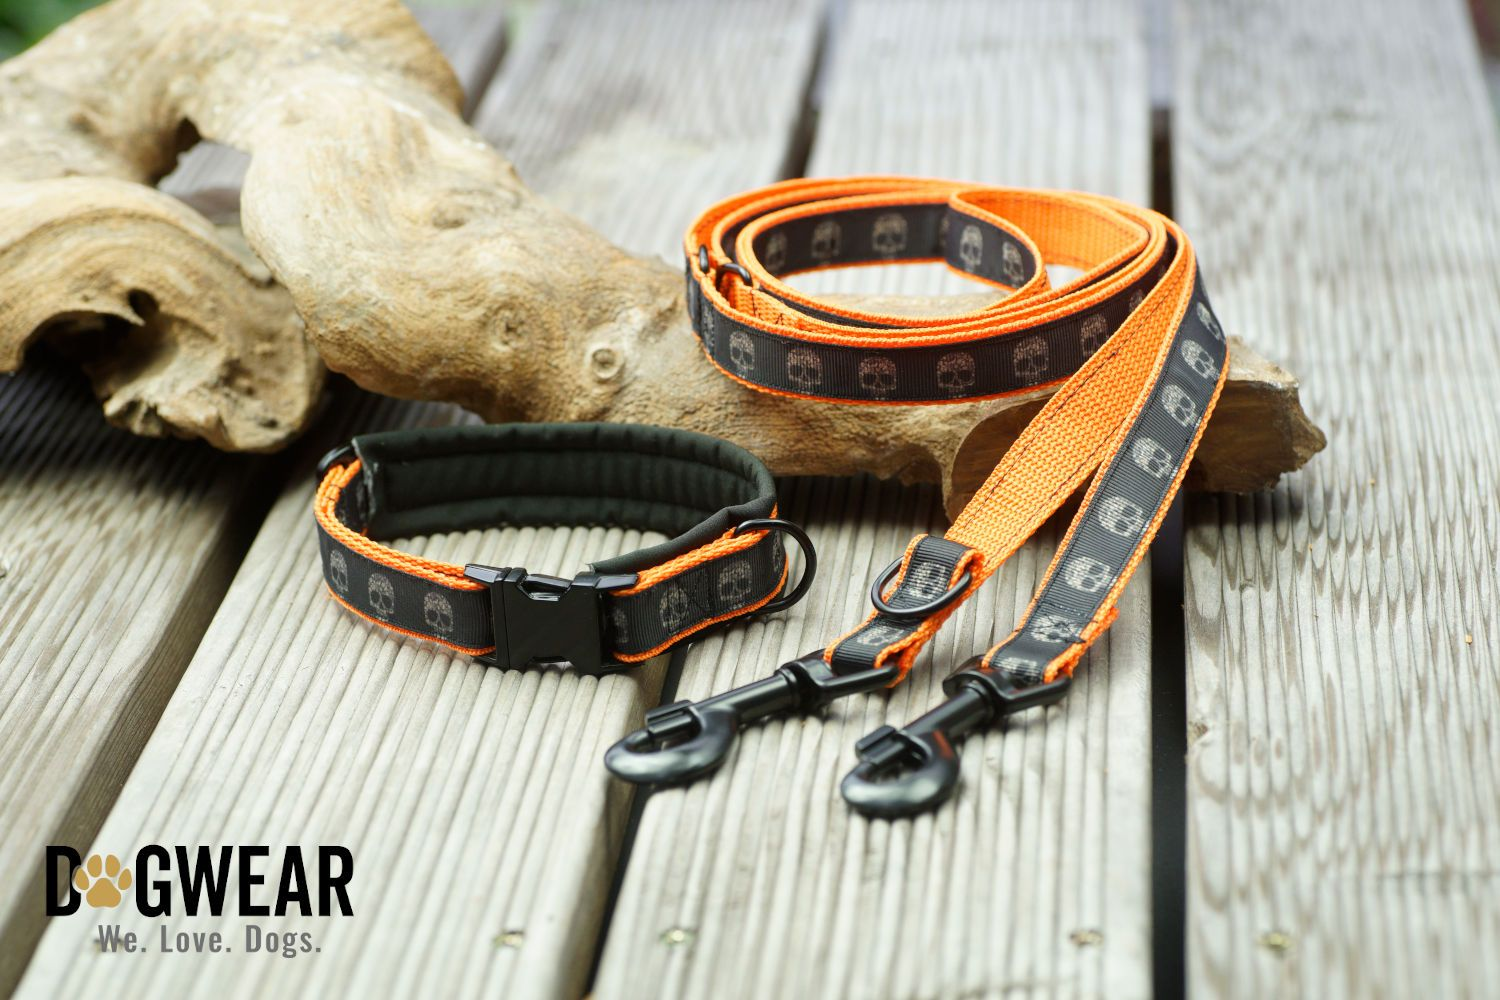 Dogwear Hundehalsband-Paket 'Deadly' orange